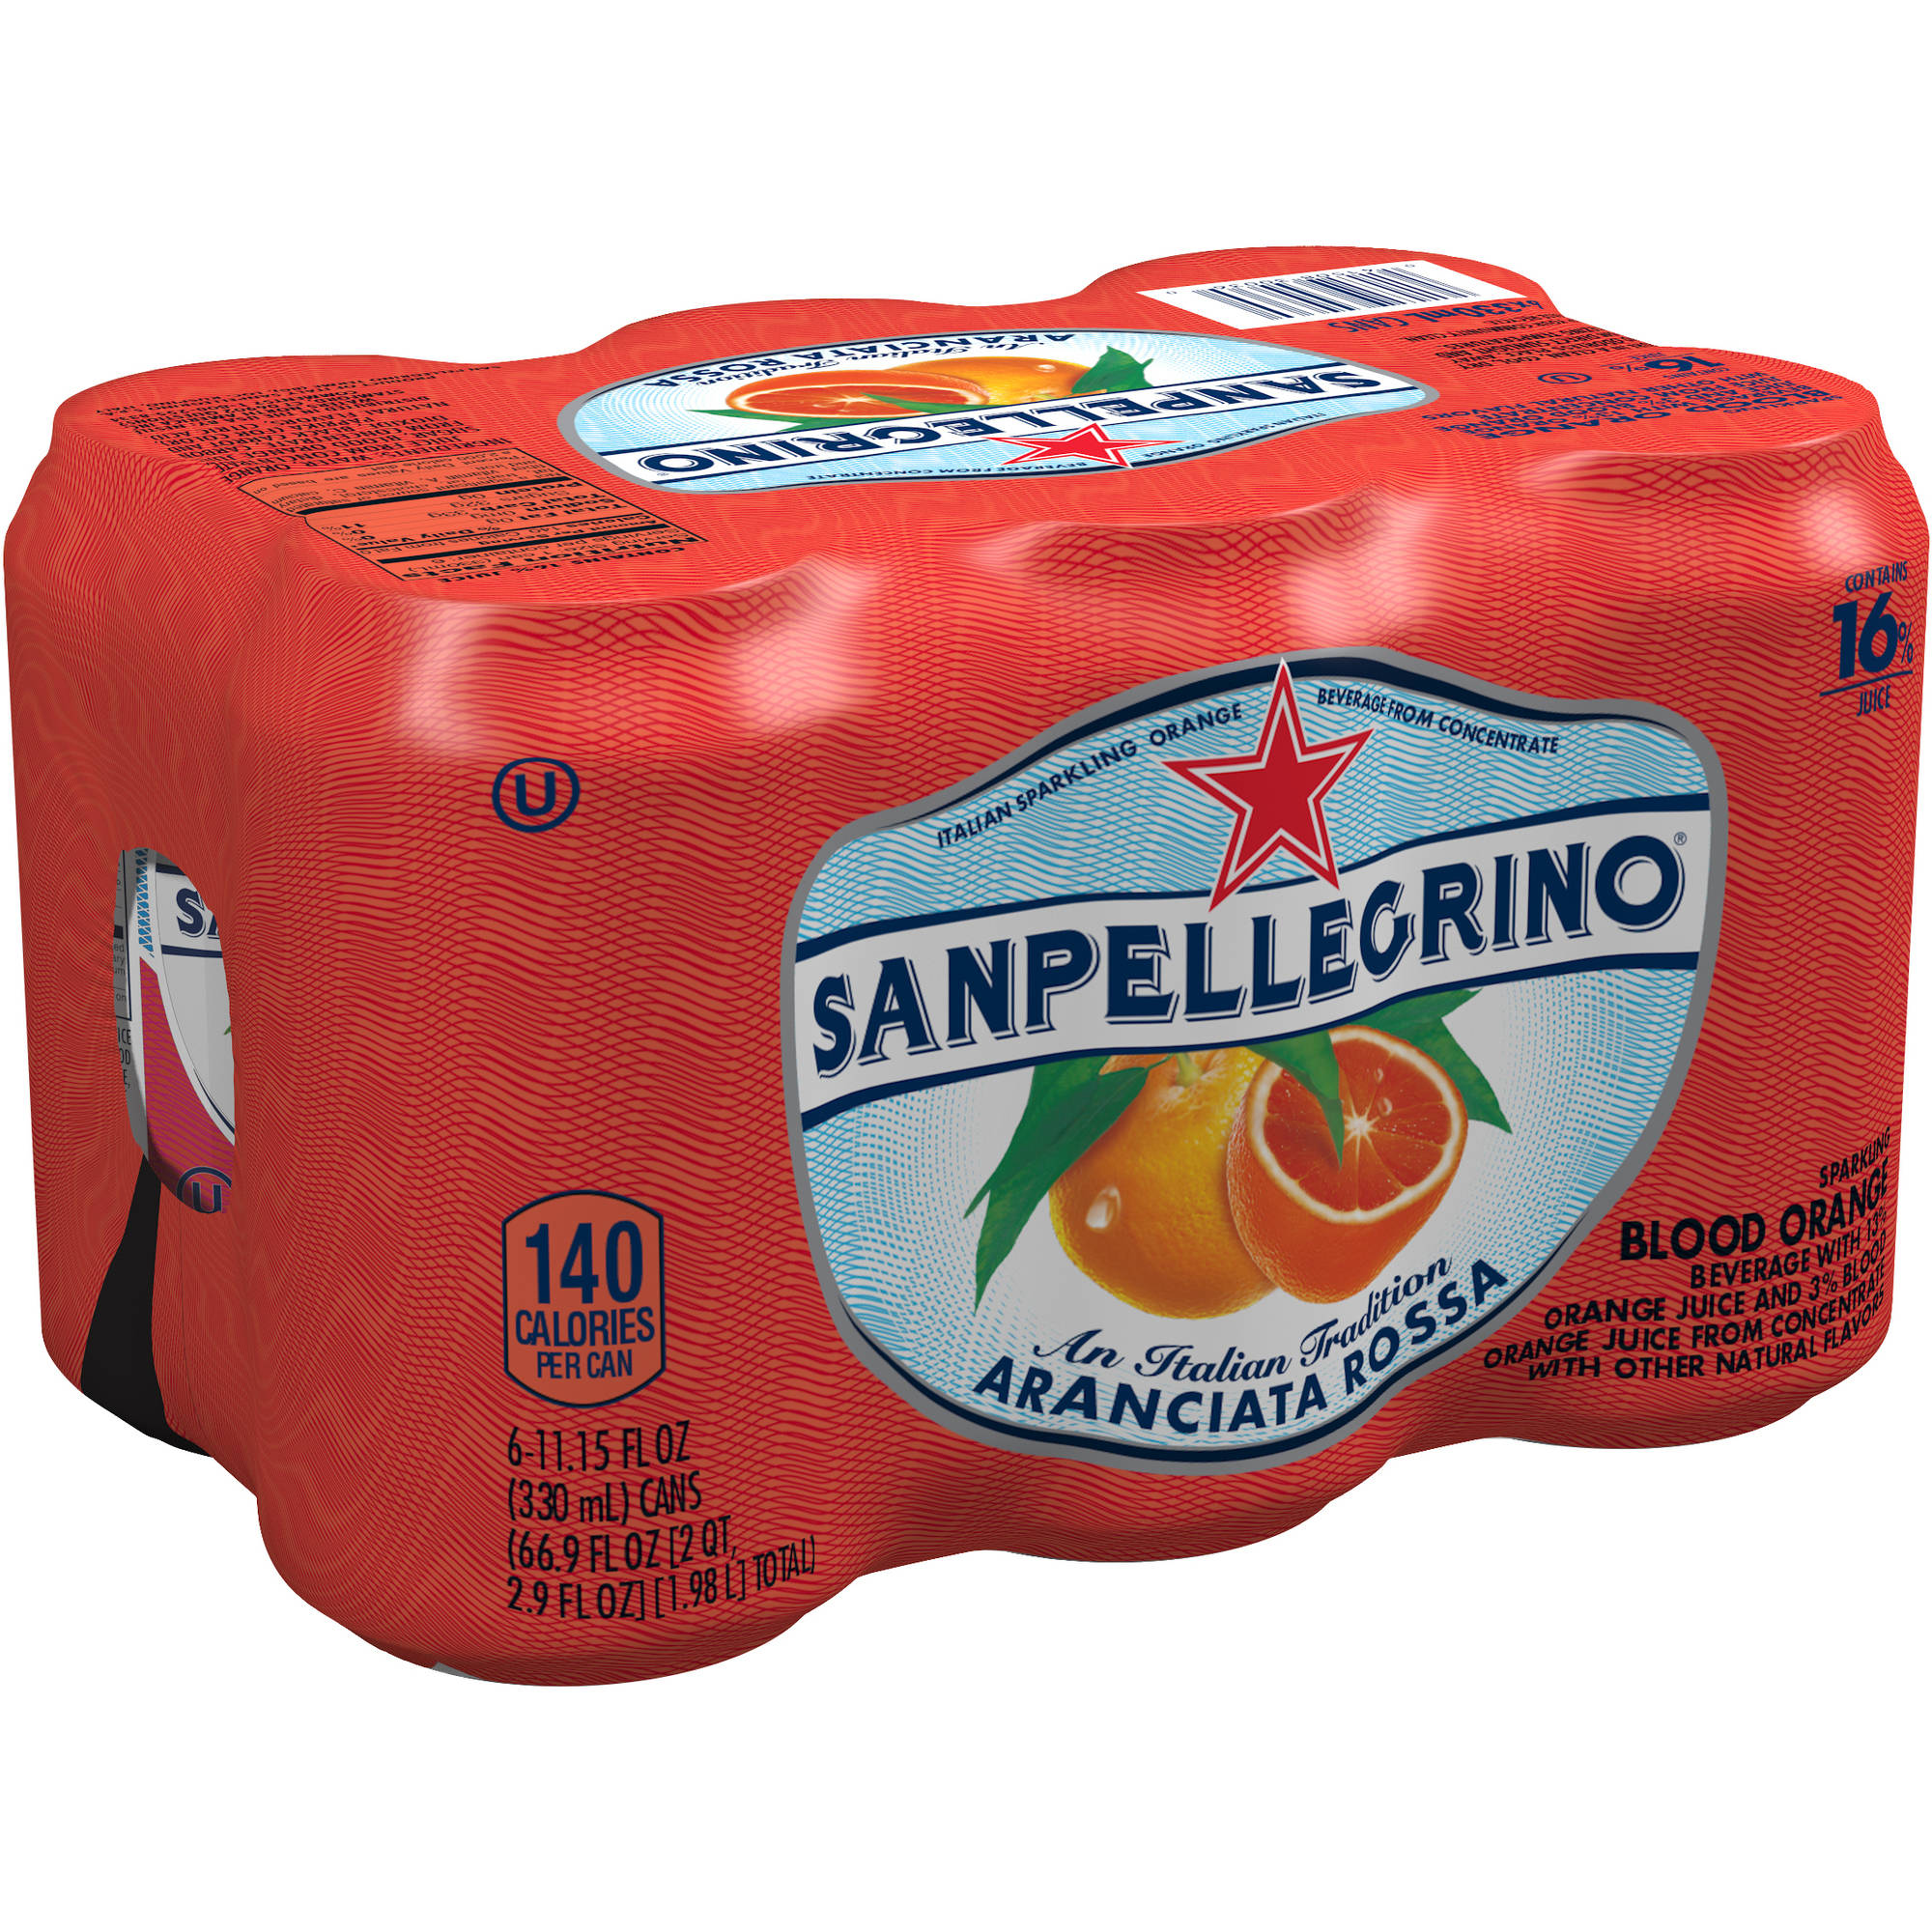 San Pellegrino Aranciata Rossa Blood Orange Sparkling Fruit Beverage, 11.15 fl oz, 6 pack